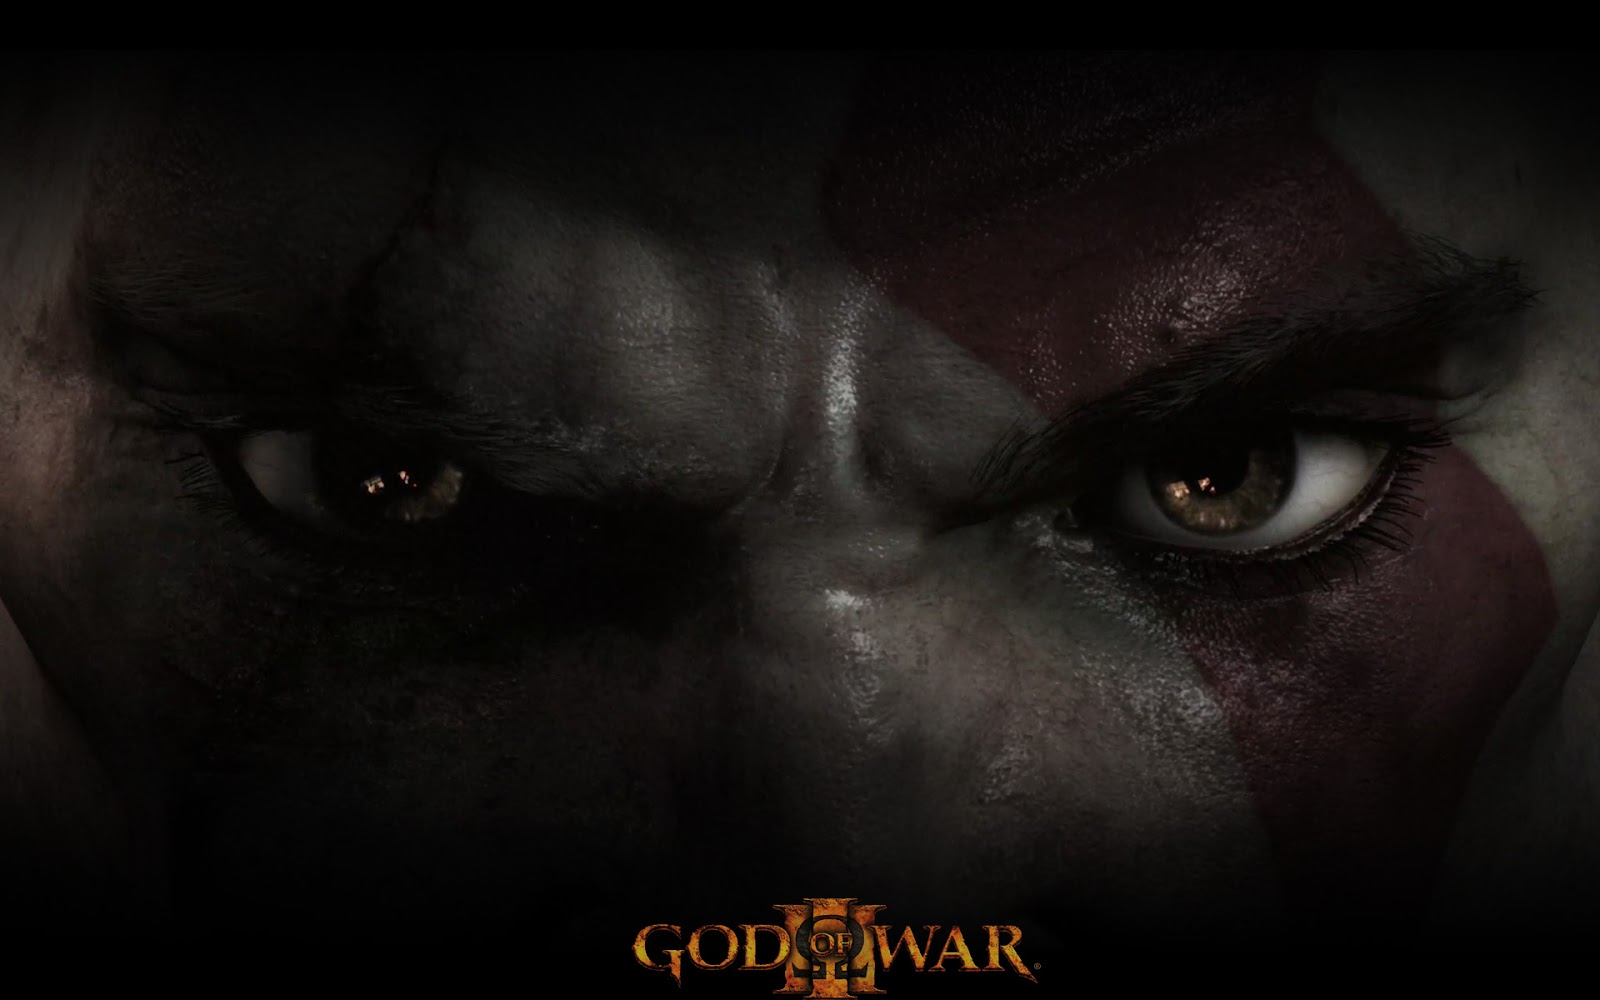 God of war ps3 ps2 all time wallpapers collection set 2 hd 2 game wallpapers for desktop mobiles tablets in high quality hd widescreen 4k ultra hd 5k 8k uhd 1920x1200 full hd wide screen 1200p 1080p 720p voltagebd Choice Image